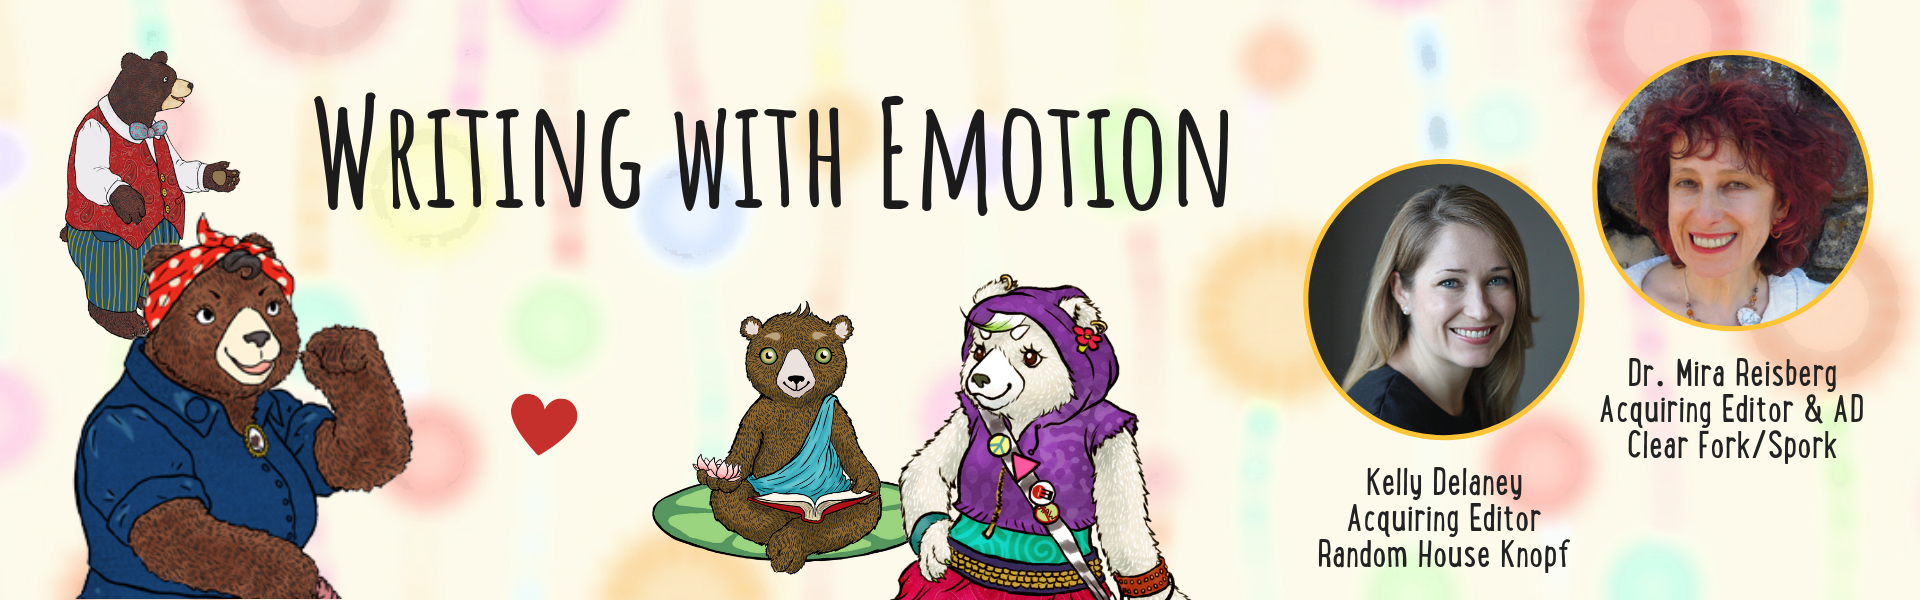 Writing with Emotion featuring Kelly Delaney and Mira Reisberg at the Children's Book Academy